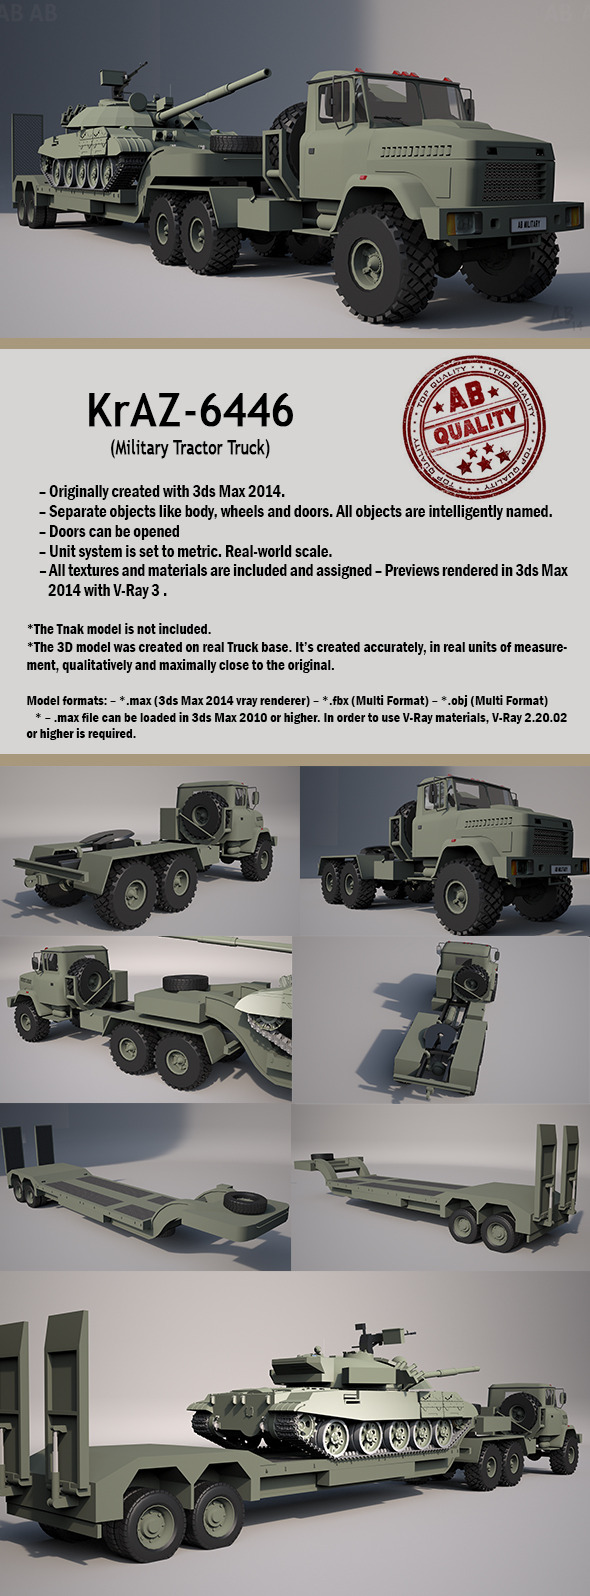 Military Tractor Truck (KrAZ-6446) With Trailer - 3DOcean Item for Sale